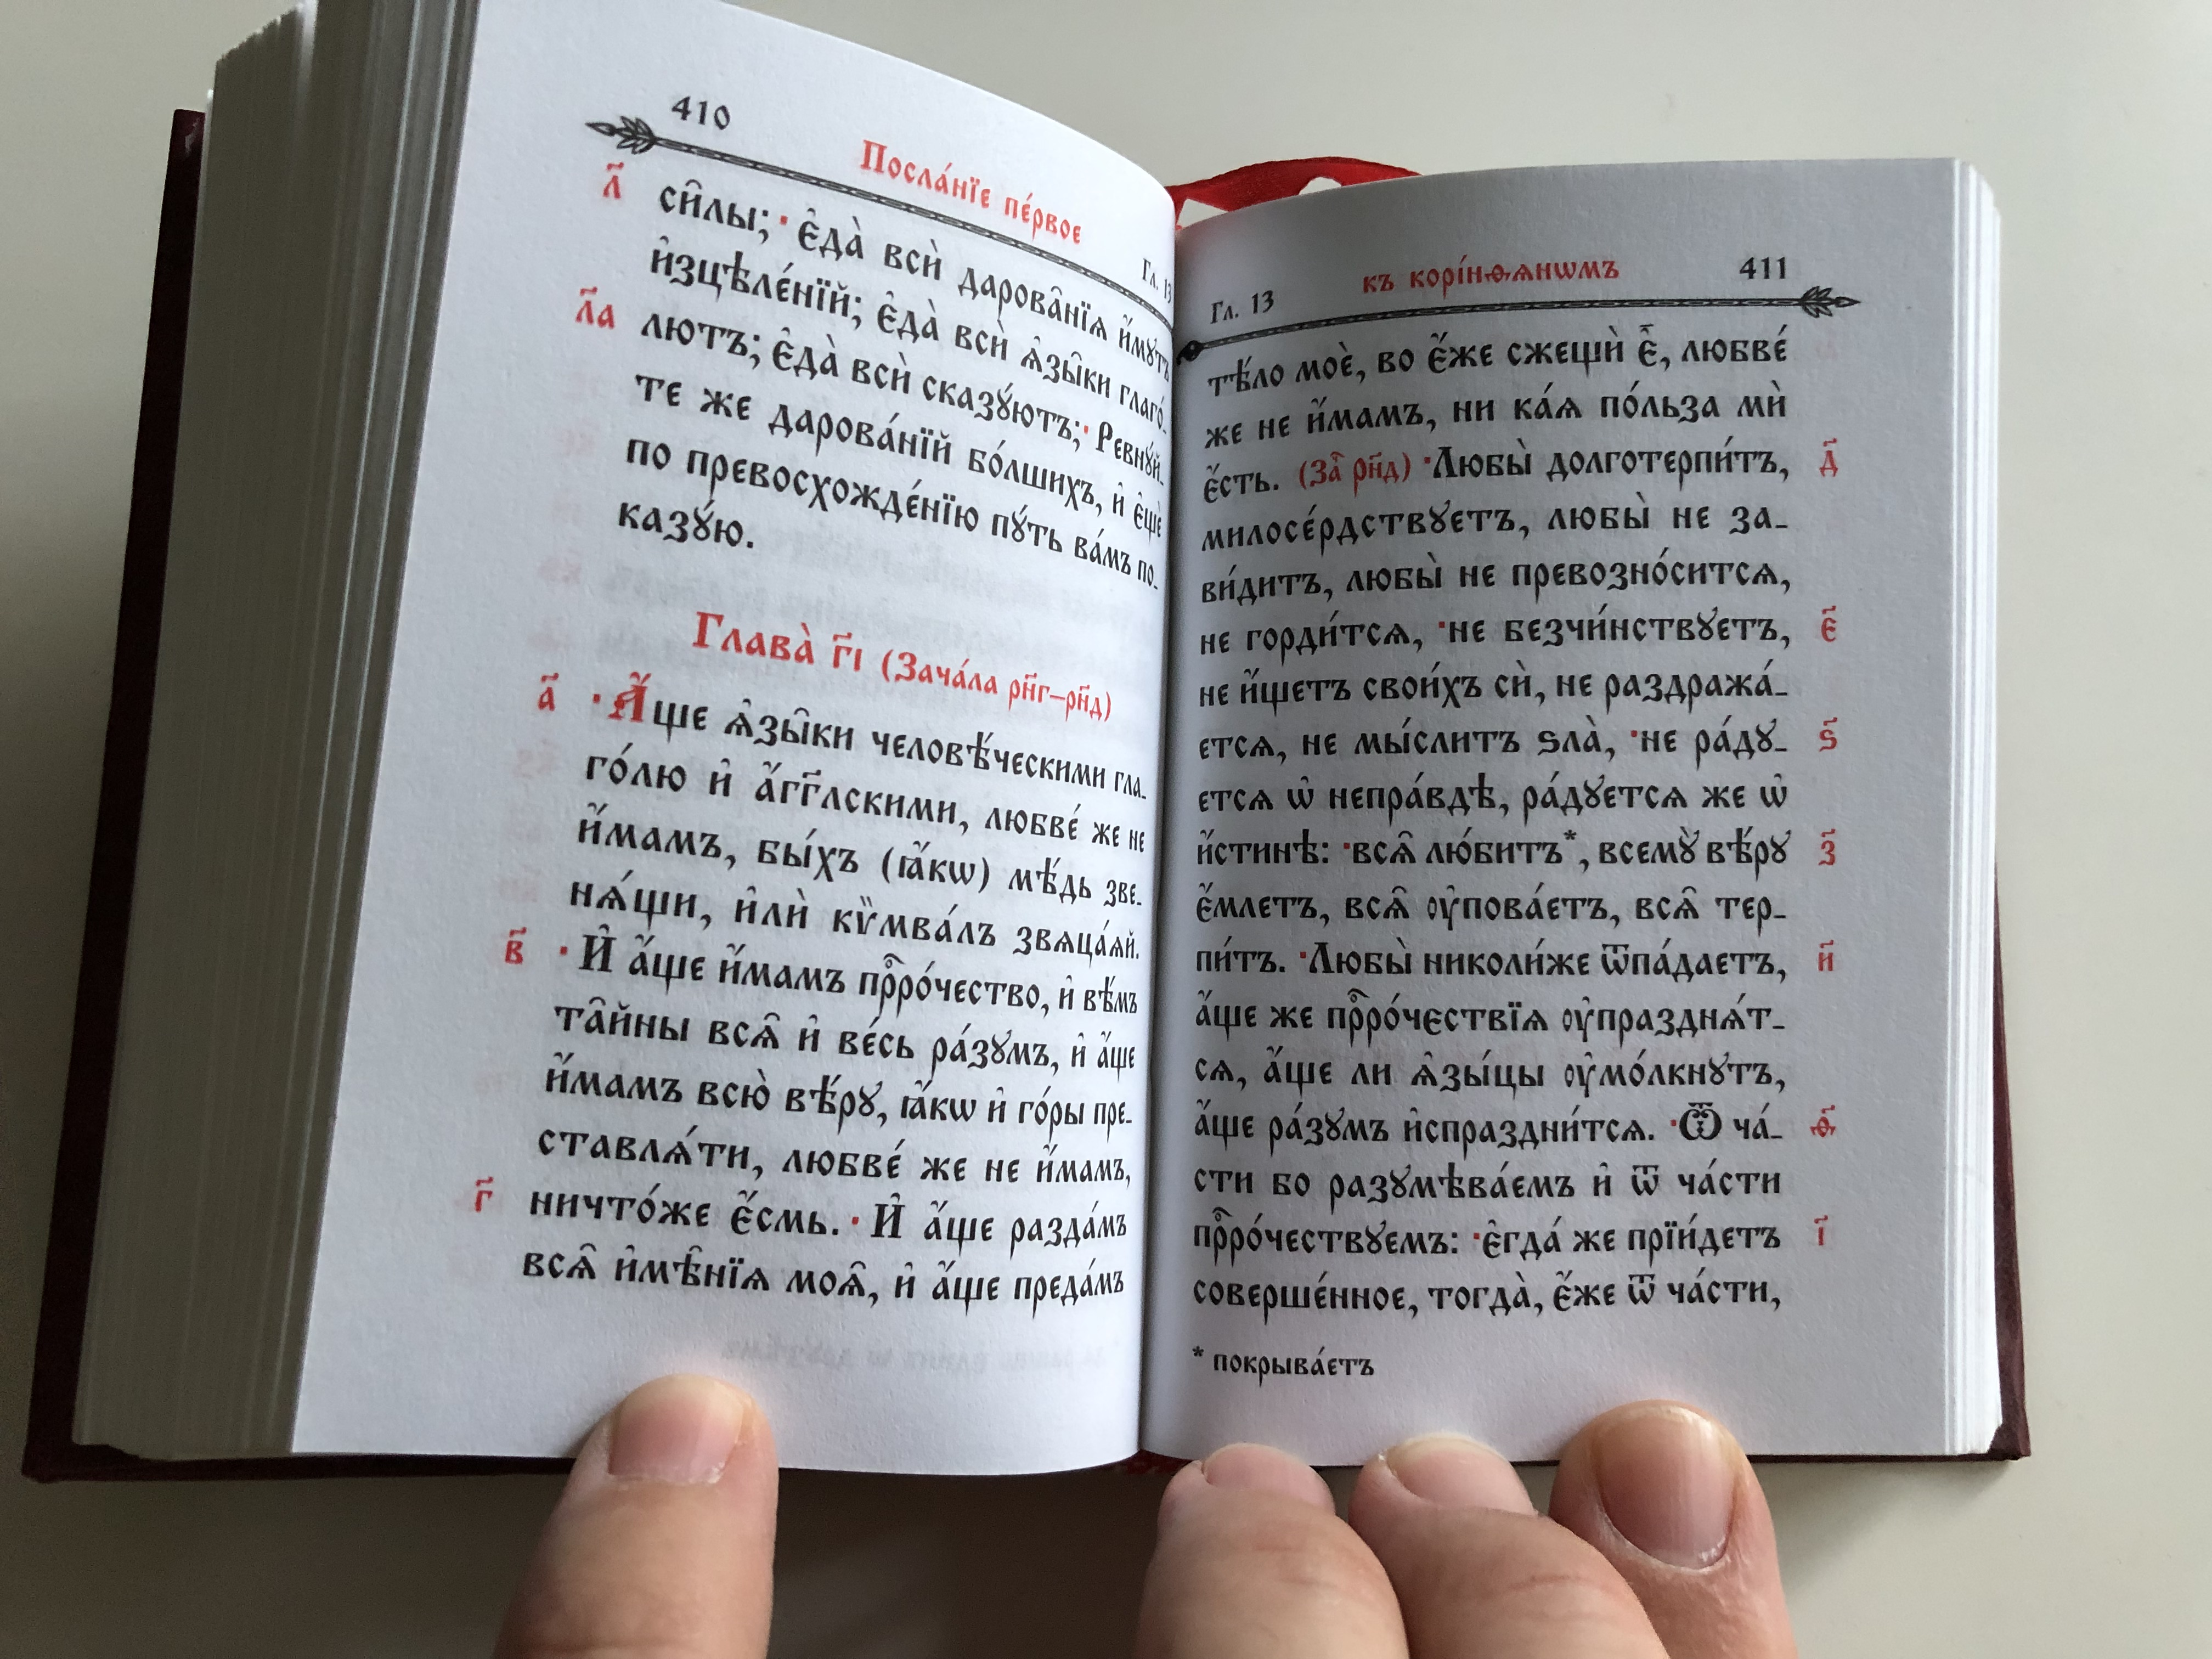 russian-language-book-of-acts-epistles-and-revelation-to-john-recommended-by-the-russian-orthodox-church-hardcover-c-2011-10-.jpg